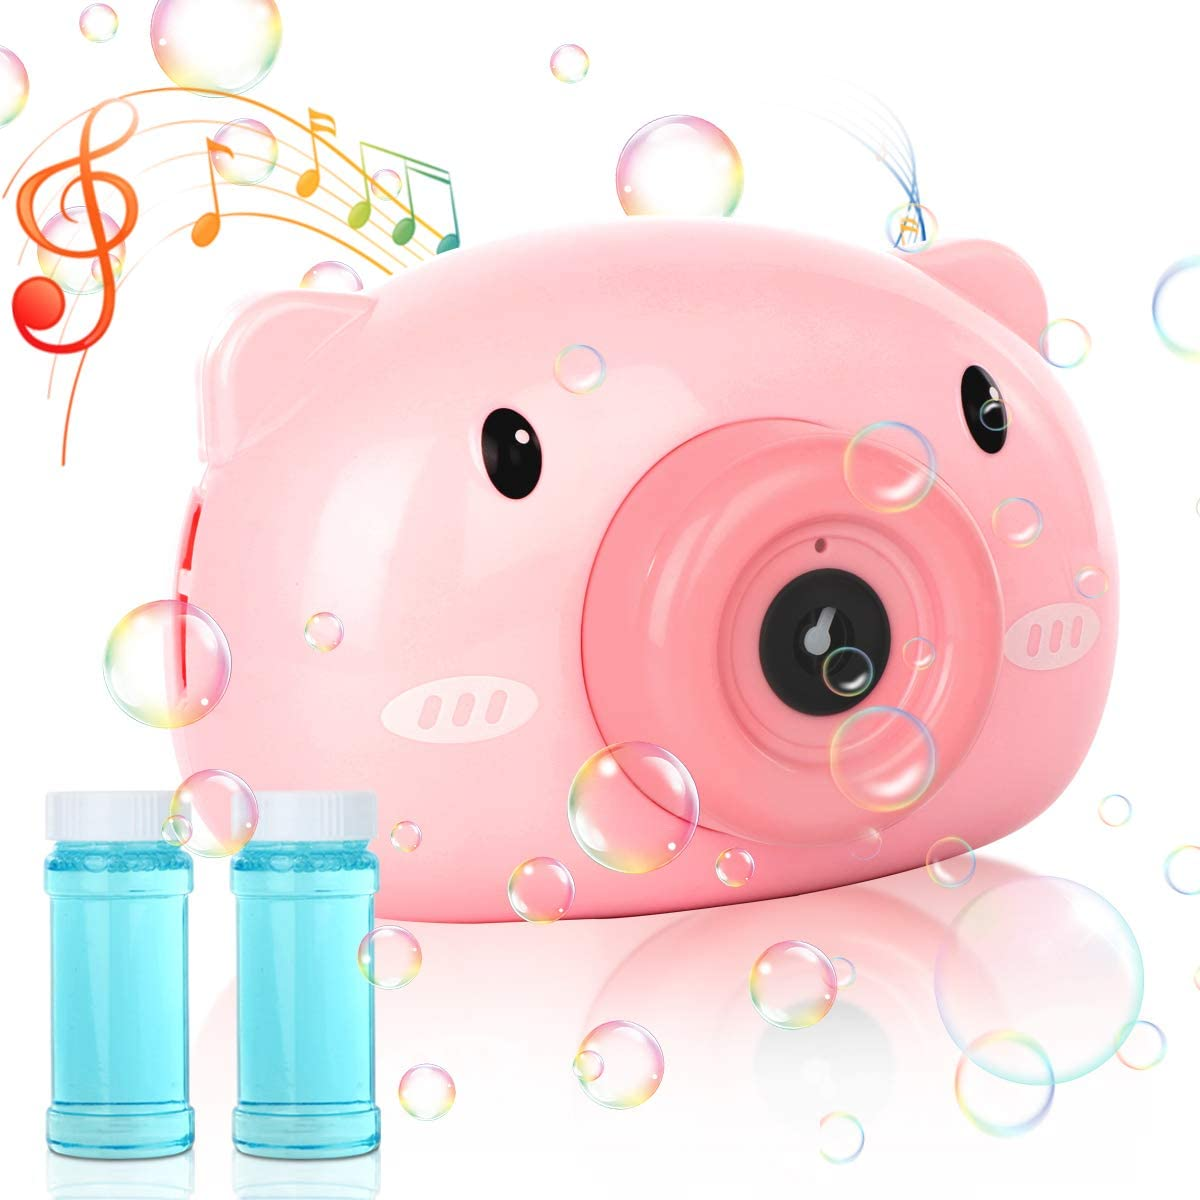 Masefu Bubble Machine in Piggy Camera Shape with Strap, Music Bubble Machine Maker for Toddler and Kids Outdoors - Automatic Bubble Maker for Outdoors, Party & Wedding